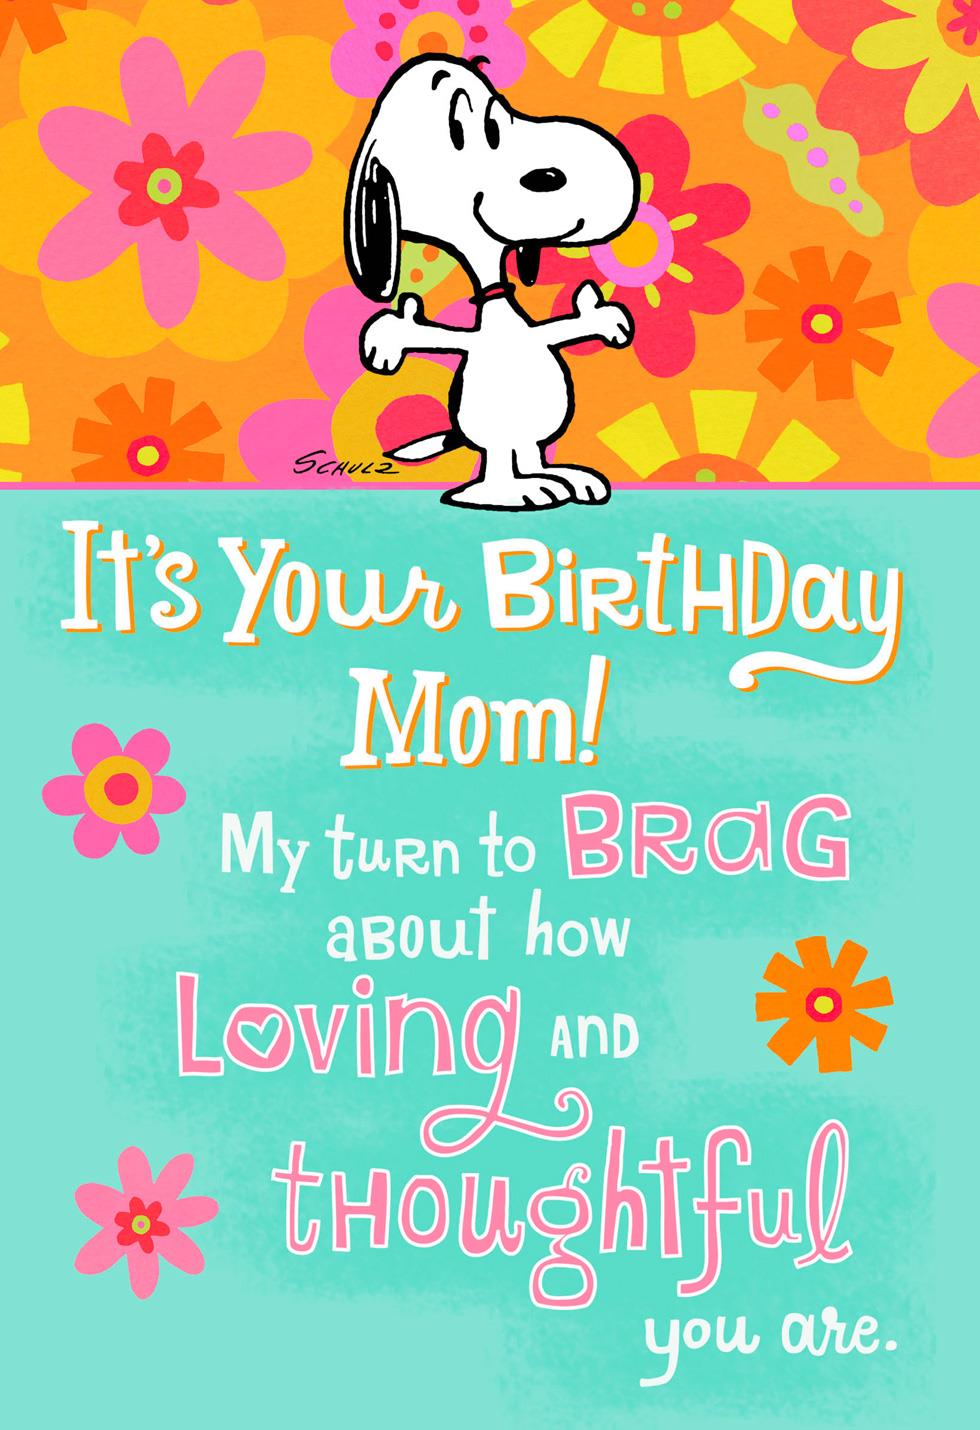 PeanutsR Snoopy Bragging Rights Funny Pop Up Birthday Card For Mom